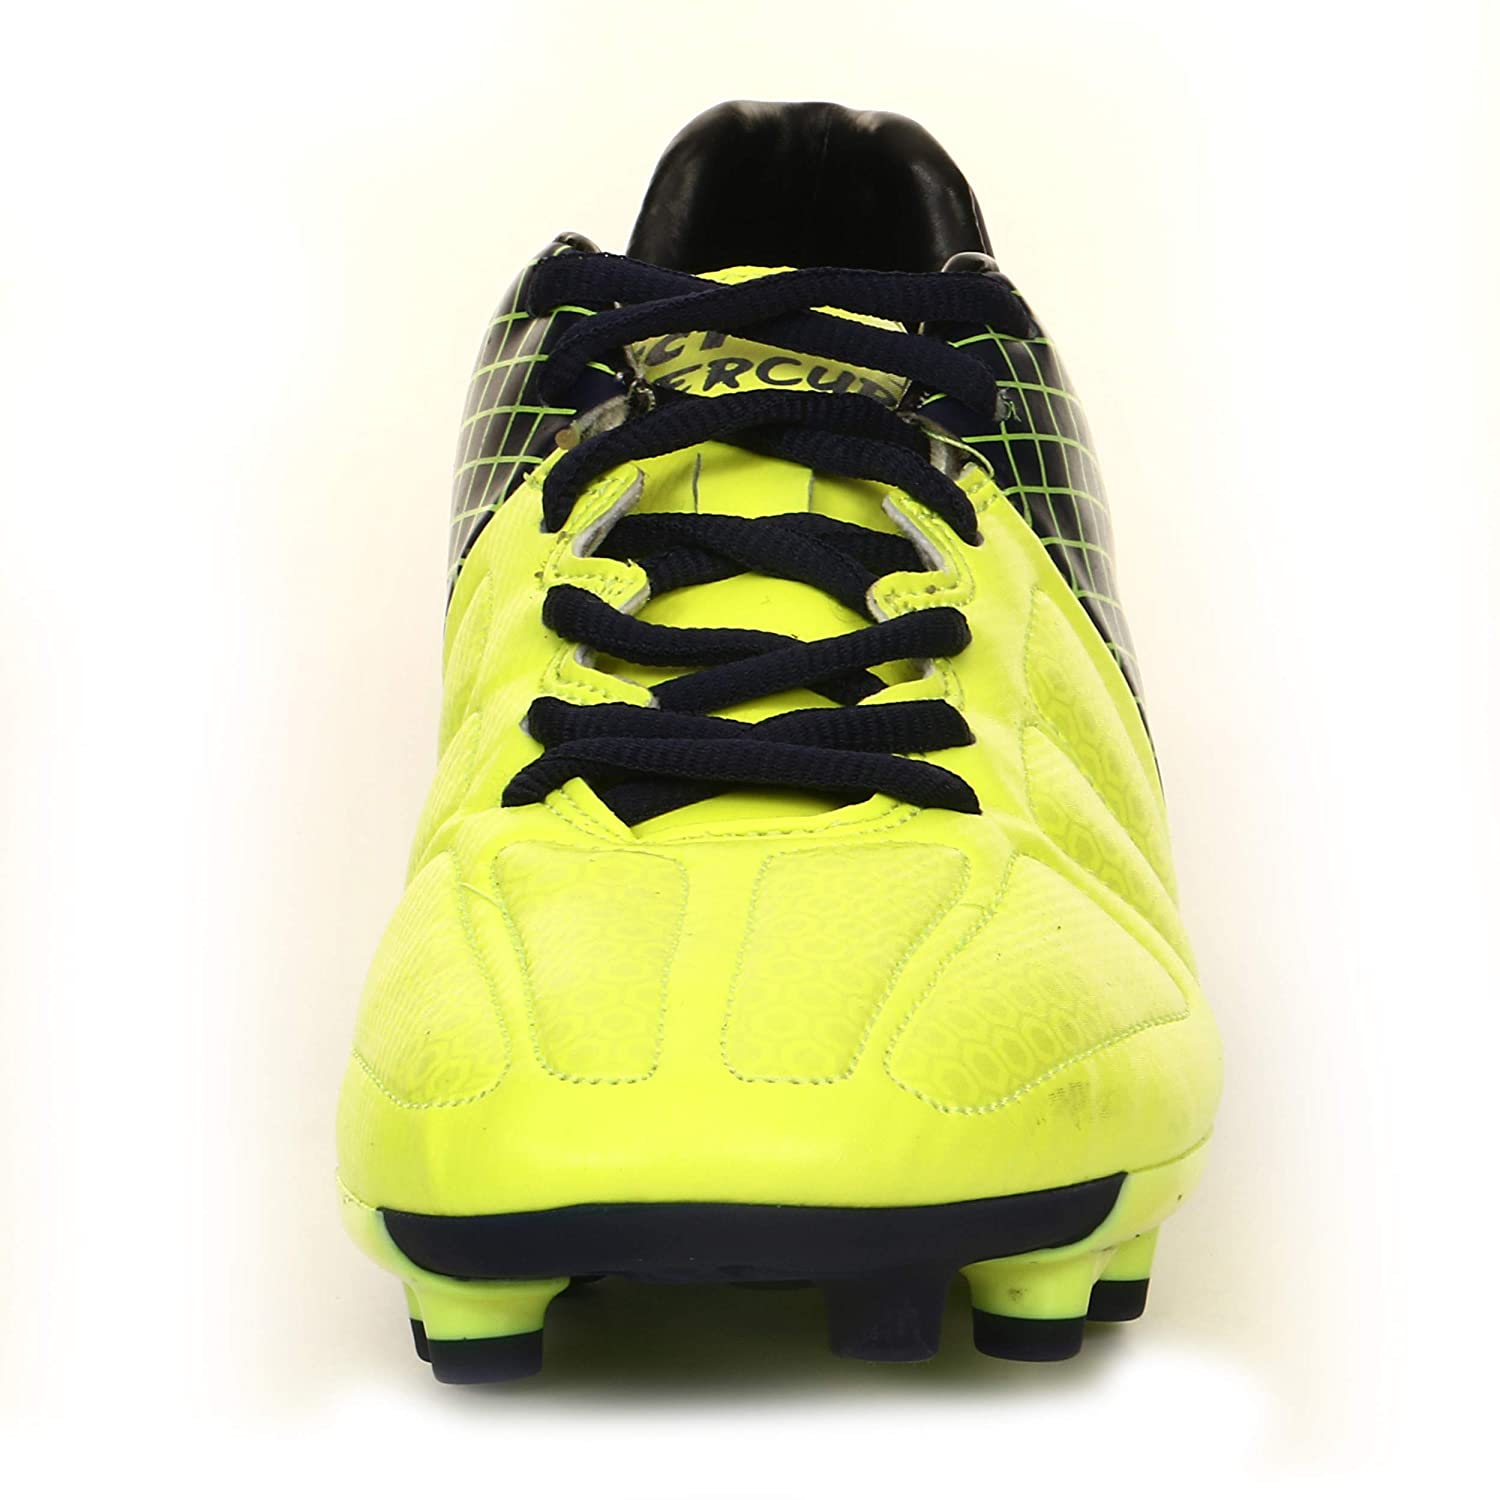 KD VX Turf Shoes Soccer Astro Indoor Sport Shoes Rubber Studs Football Cleats Size